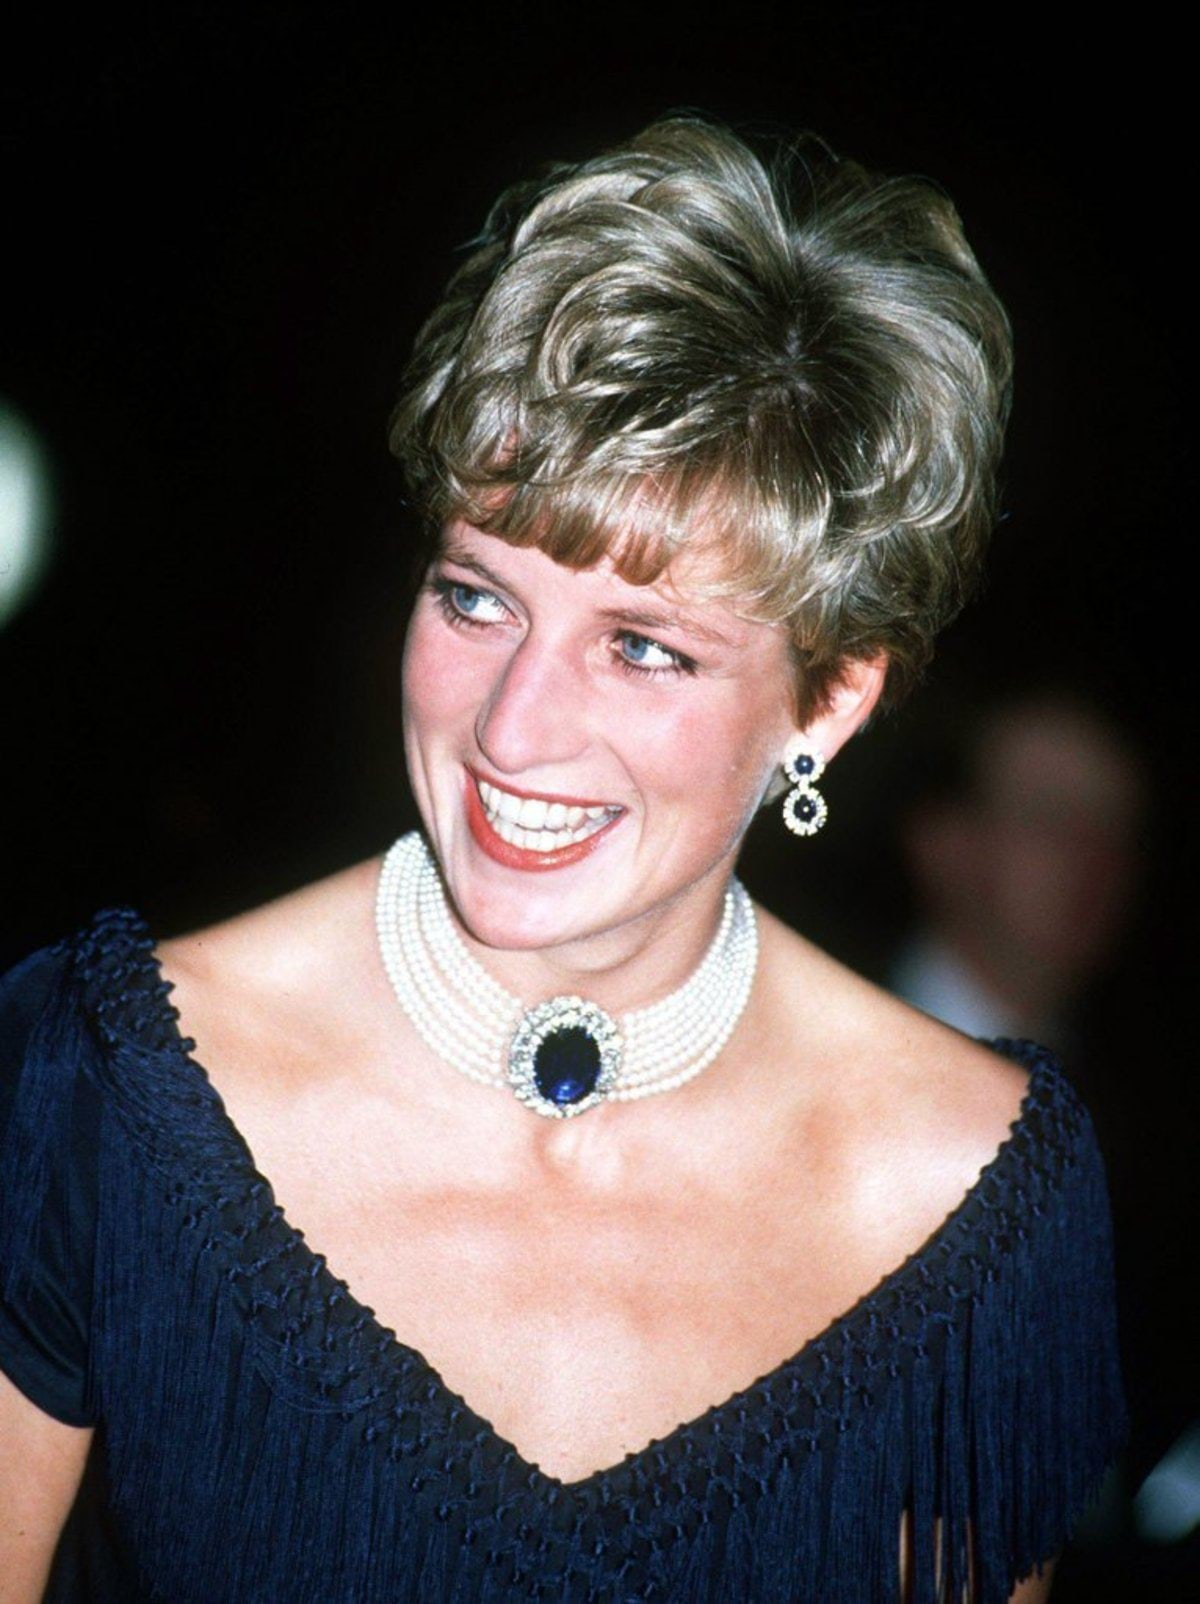 Diana-sapphire-chokerDiana-second-most-famous-sapphire-given